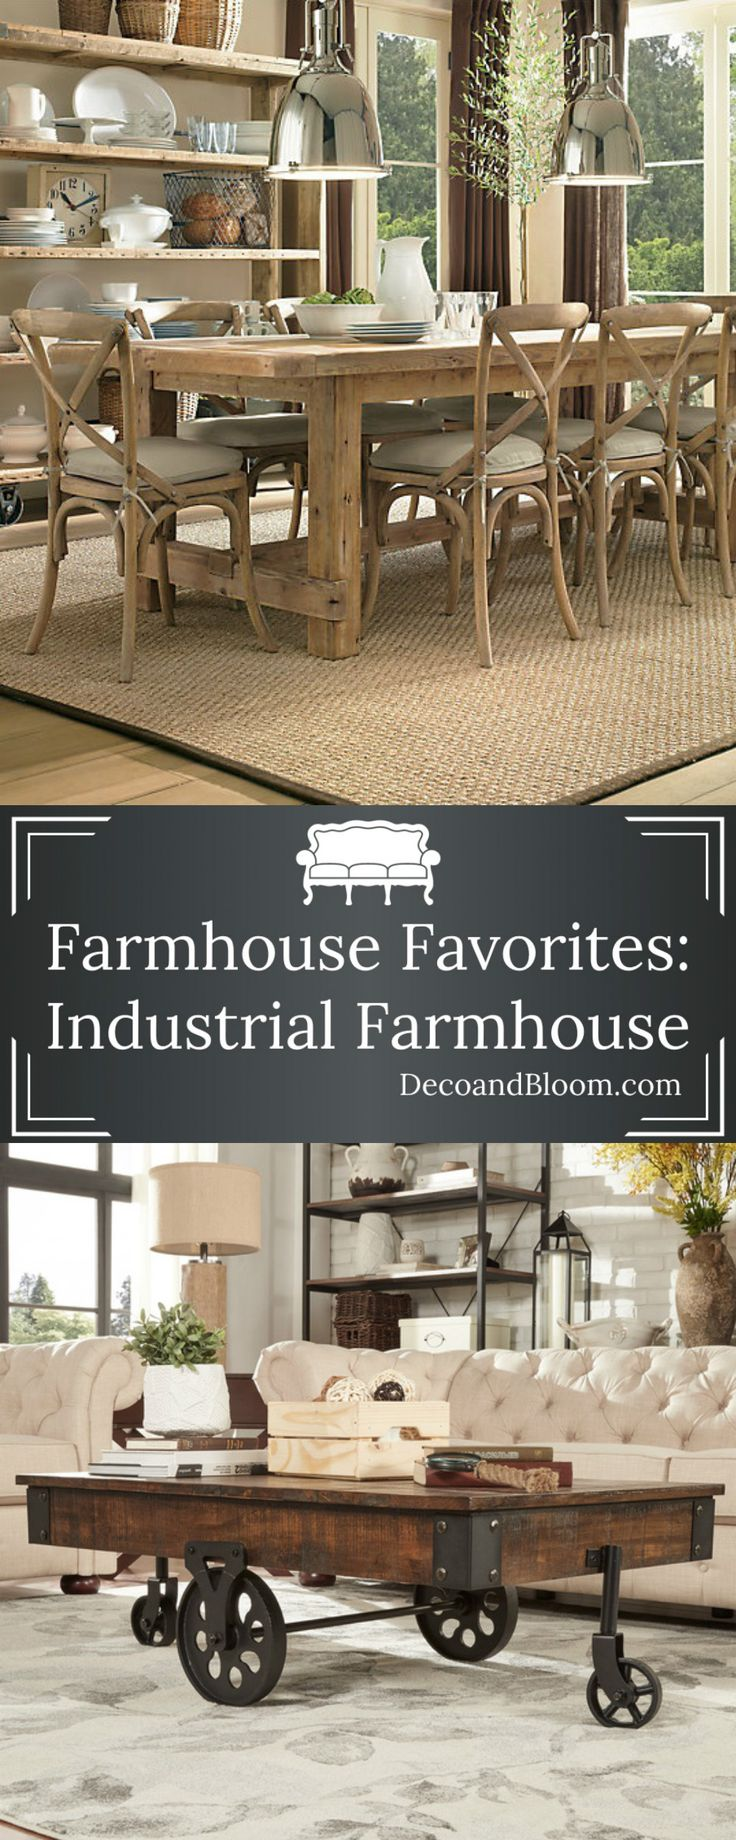 17 ideas about Industrial Farmhouse on Pinterest